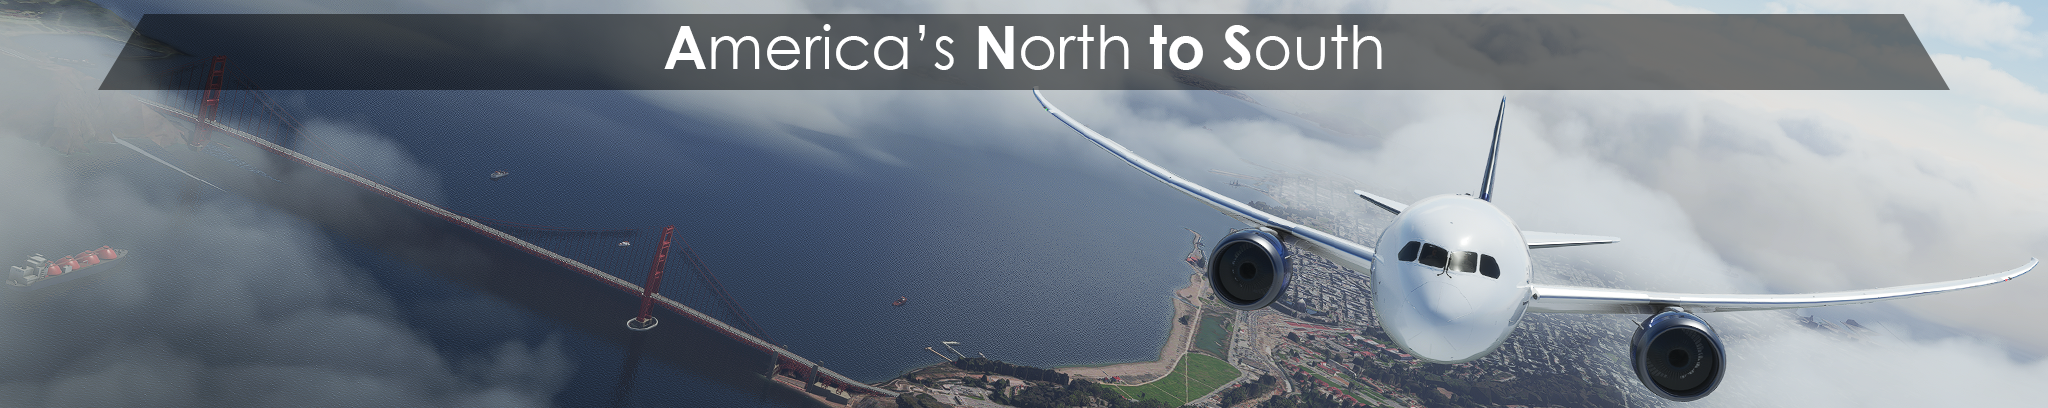 America's - North to South